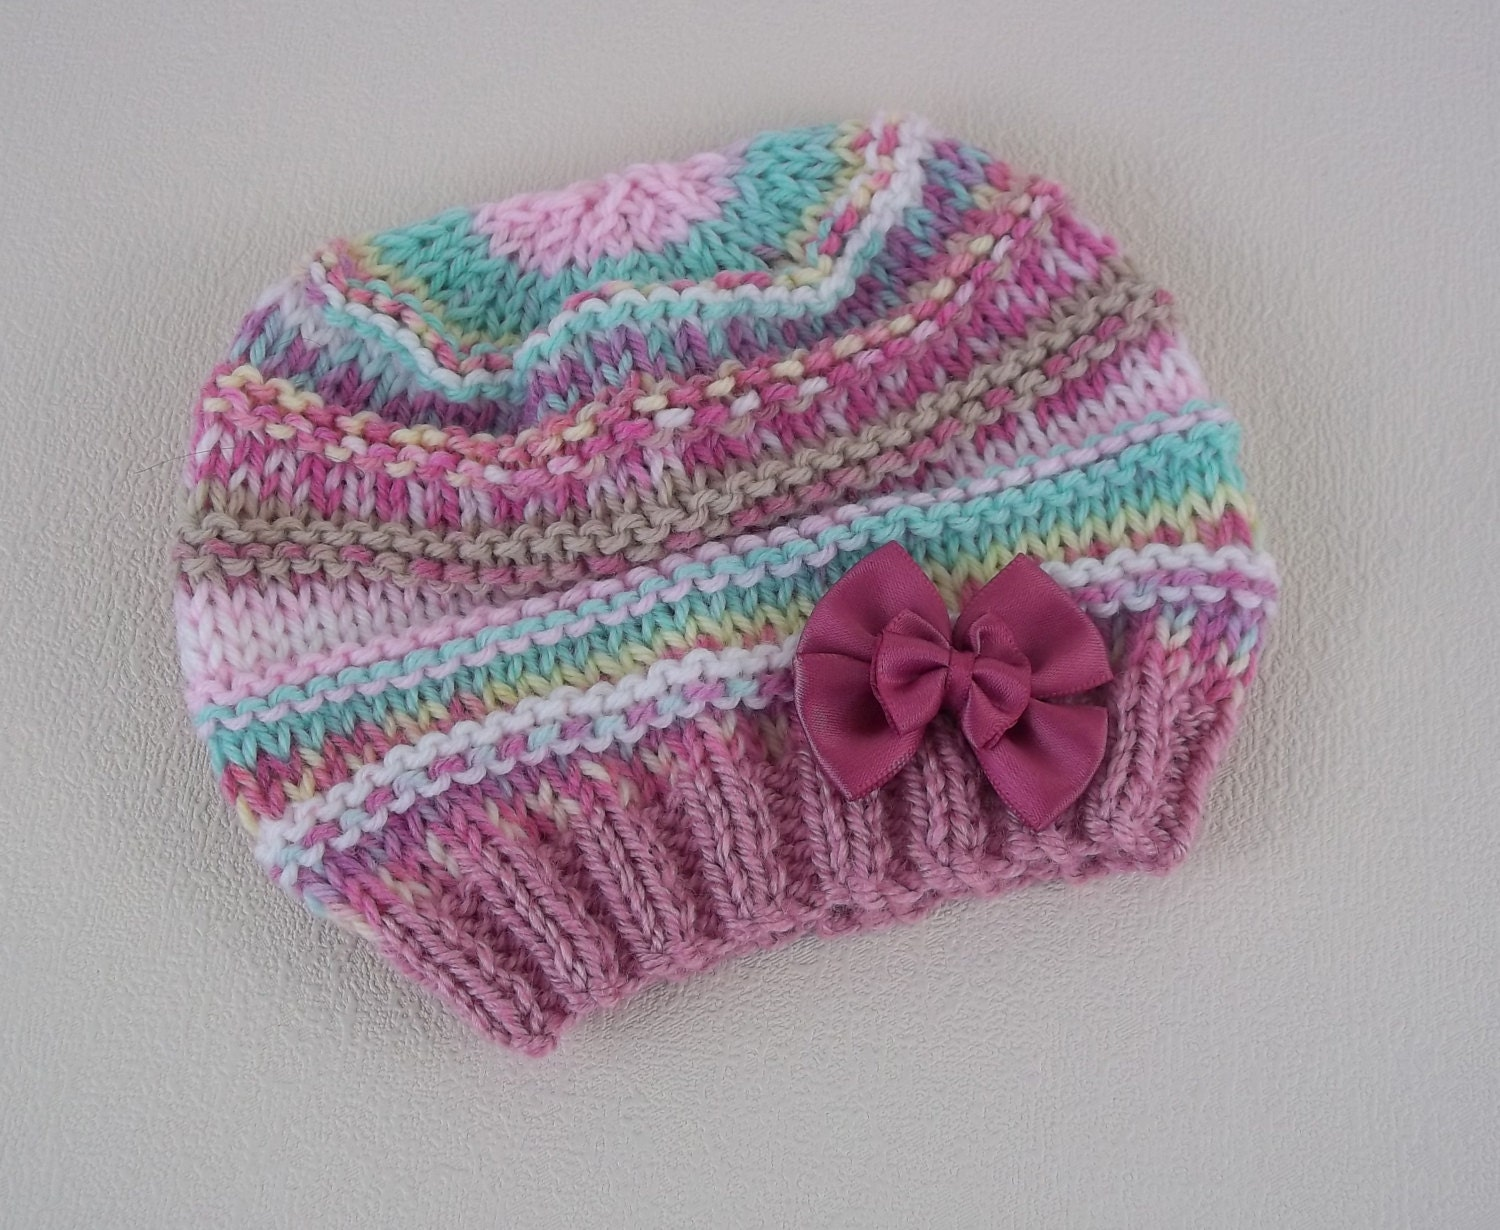 Knitting Hat Patterns For Beginners : Baby knitting pattern easy knit hat download pdf